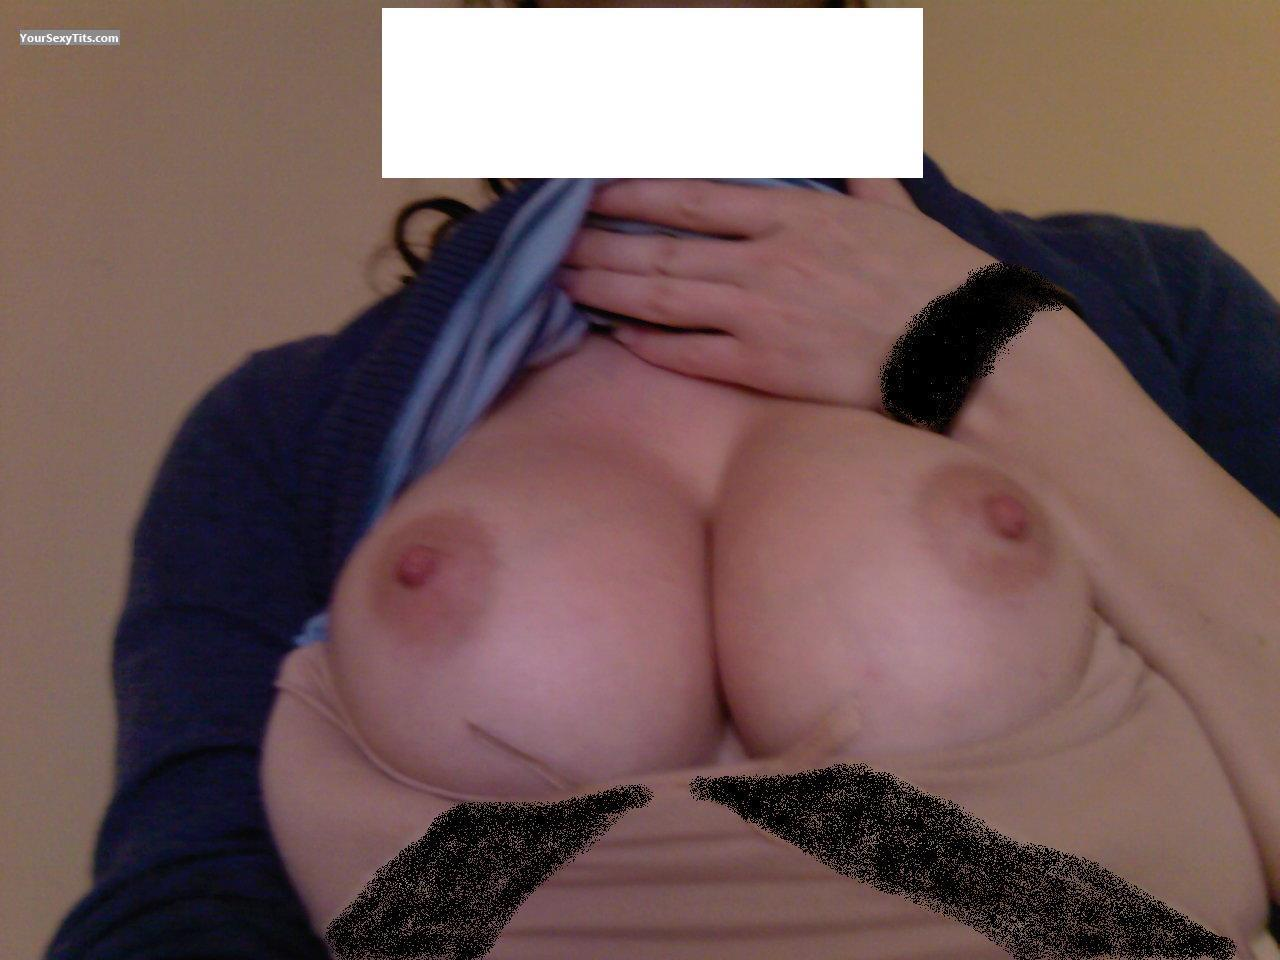 Tit Flash: My Medium Tits (Selfie) - Irma from United States